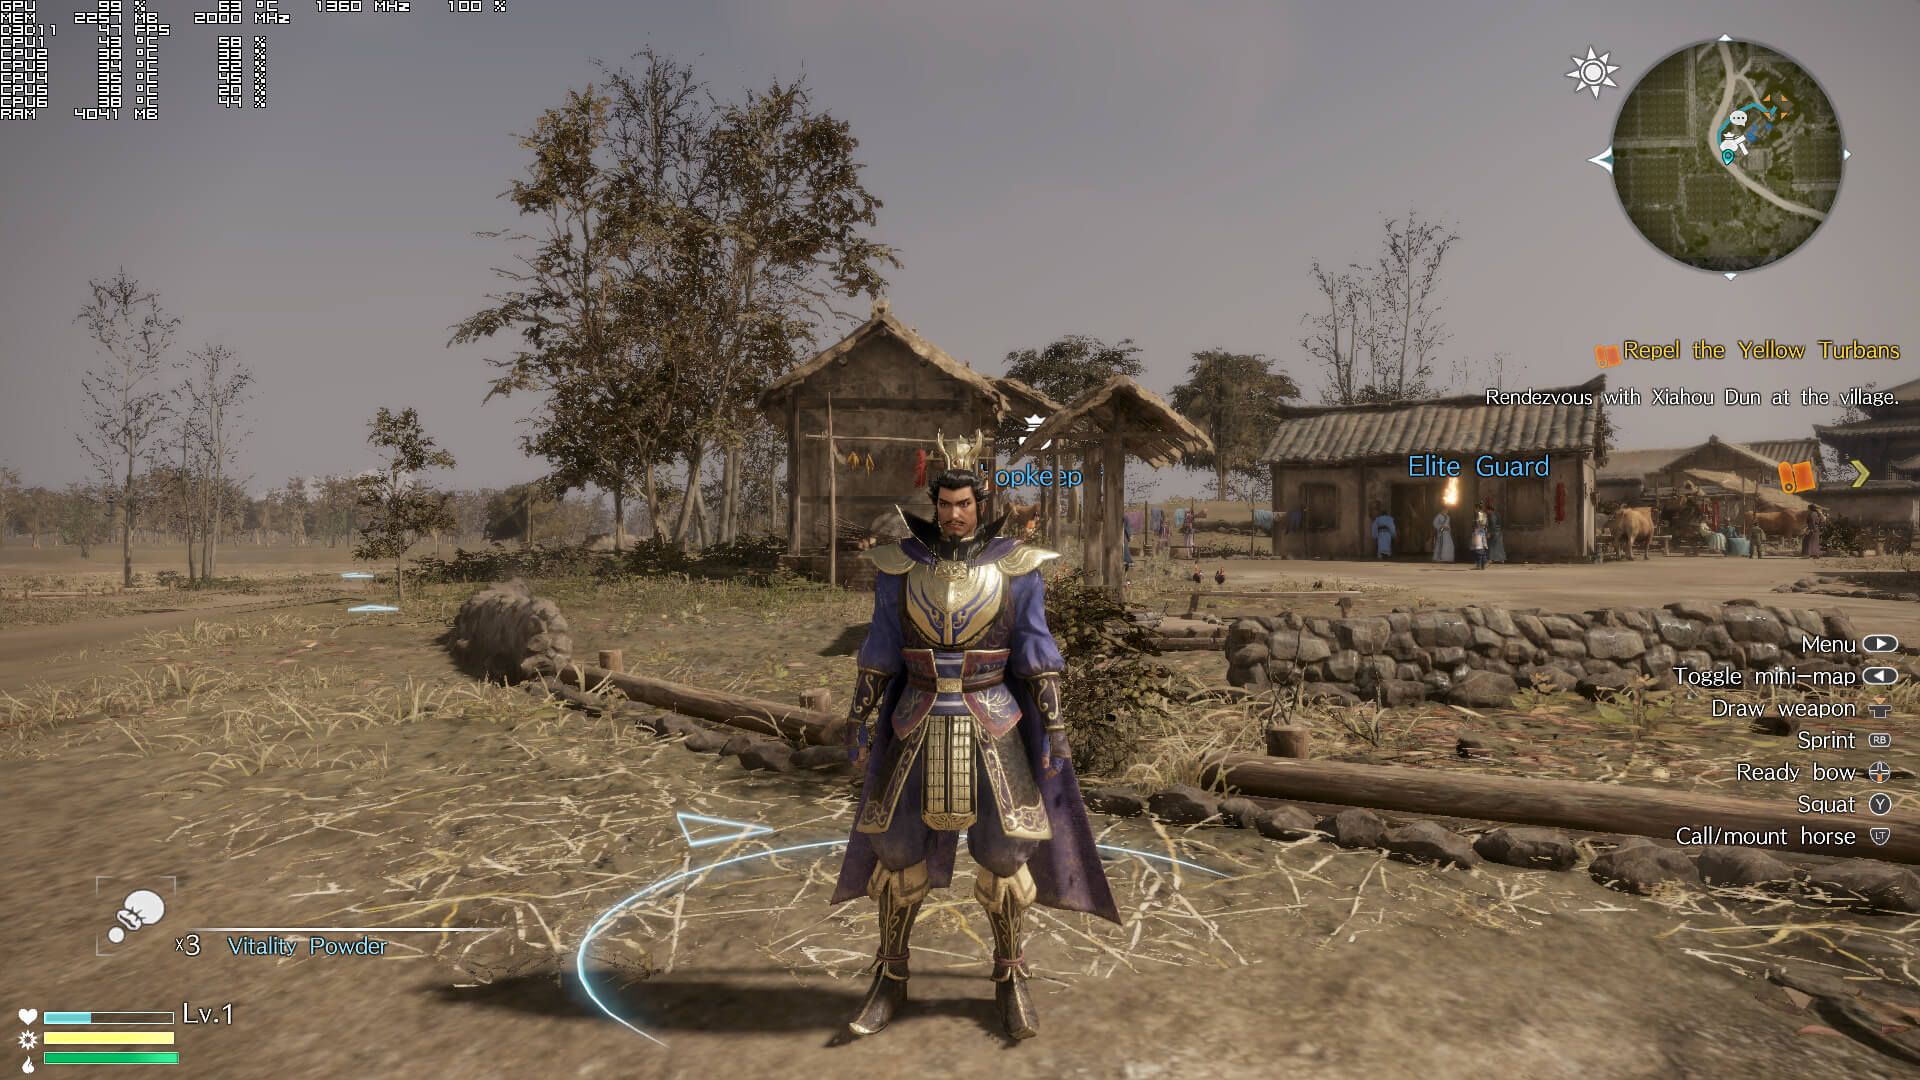 Dynasty Warriors 9 Just Got A Crucial Patch On The PS4